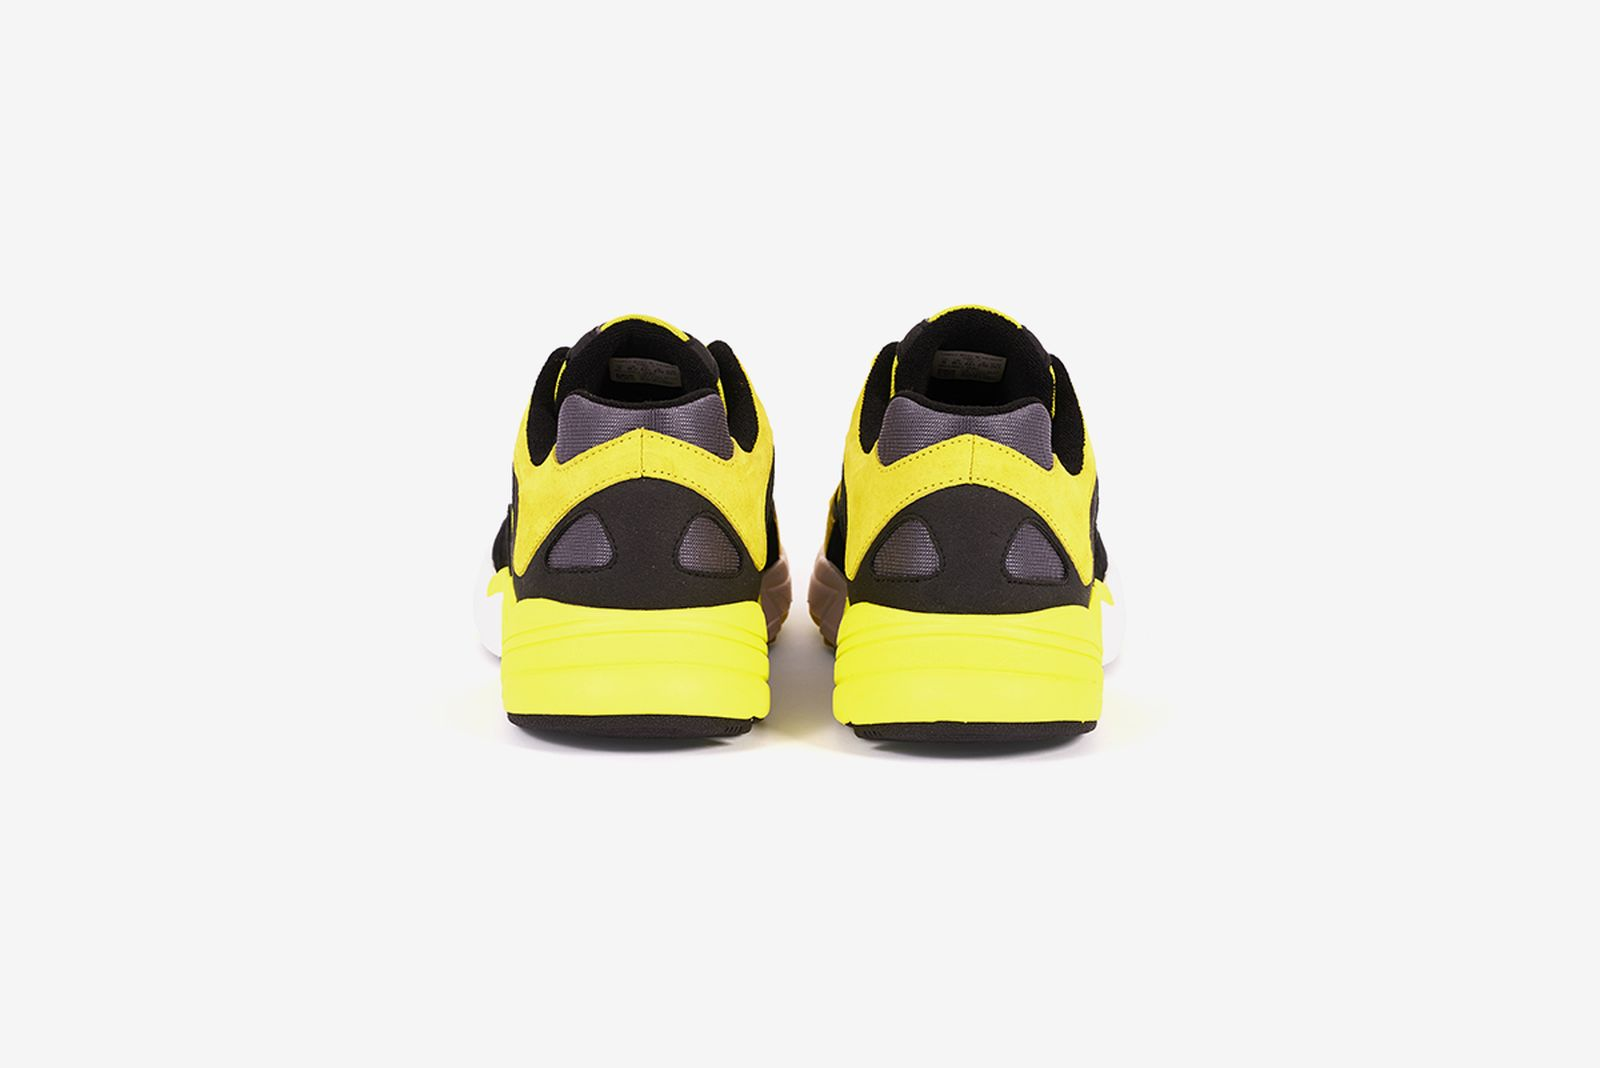 size adidas acid house pack release date price 2 adidas Falcon adidas Originals adidas Yung 1